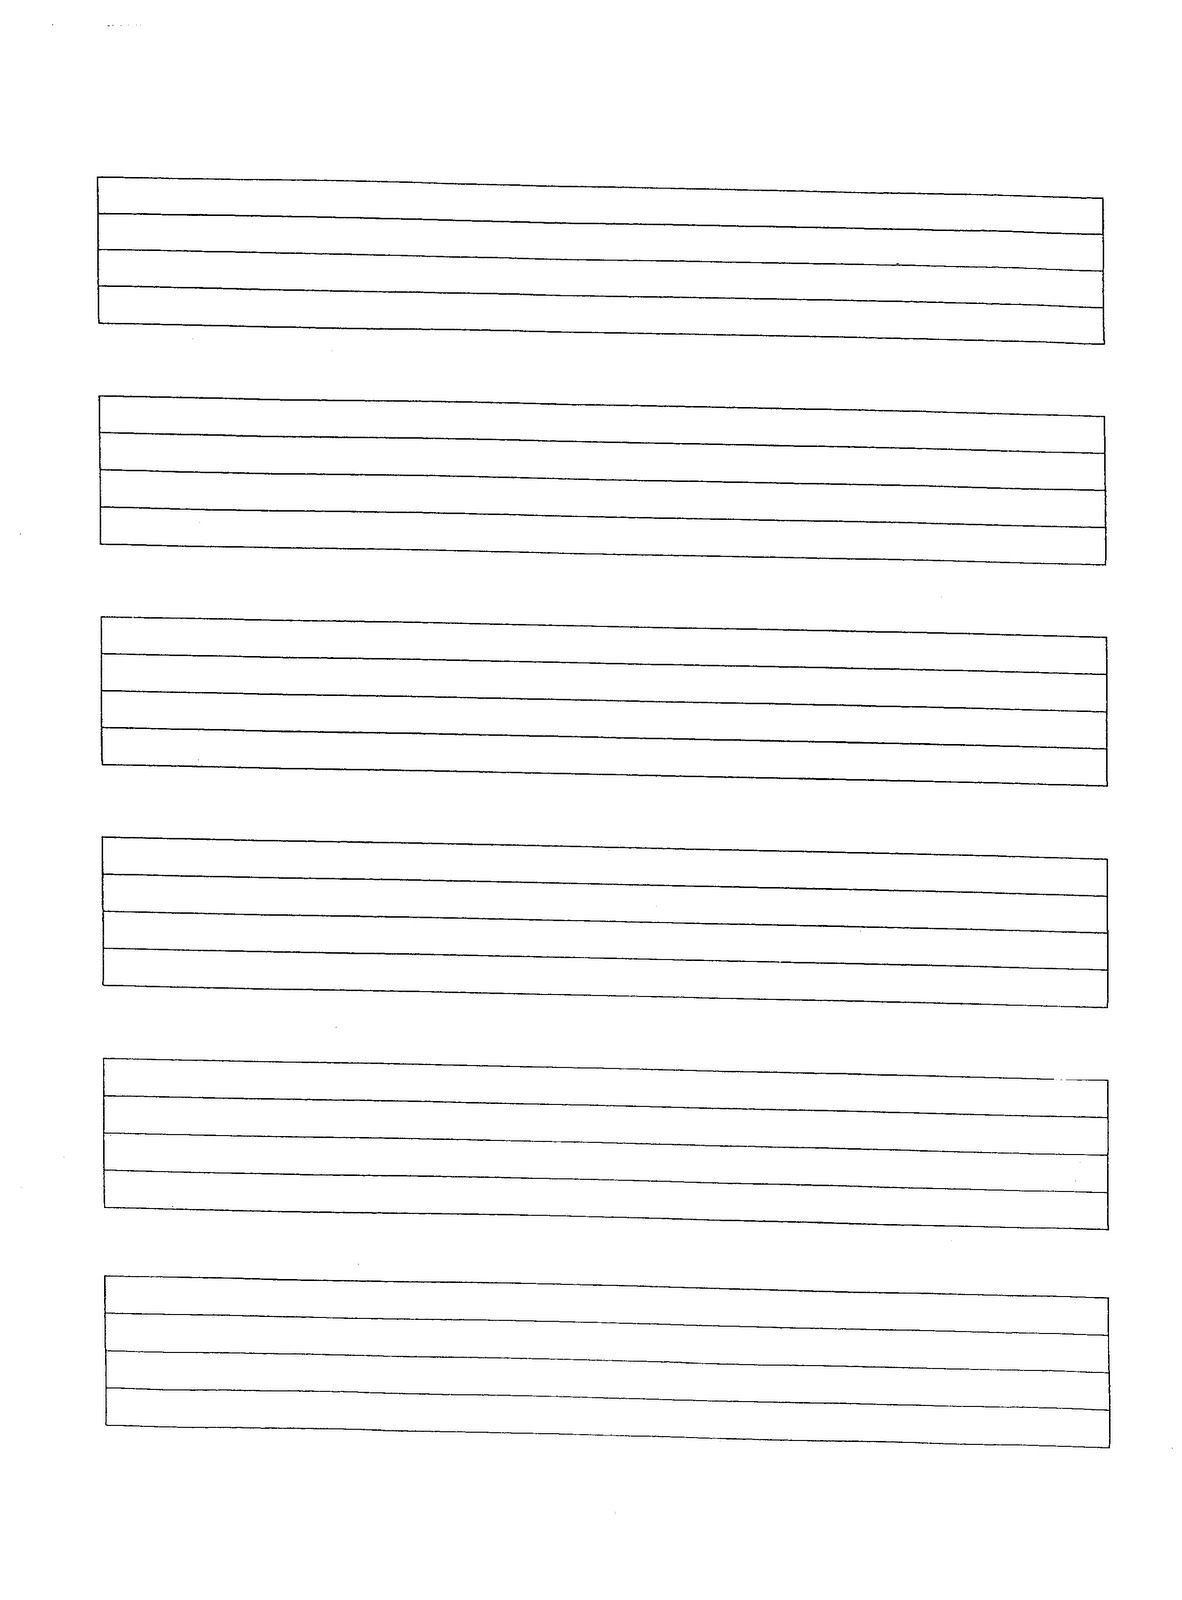 Music Manuscript Paper Free Printable | Sites Where You Can Find | Manuscript Printable Worksheets